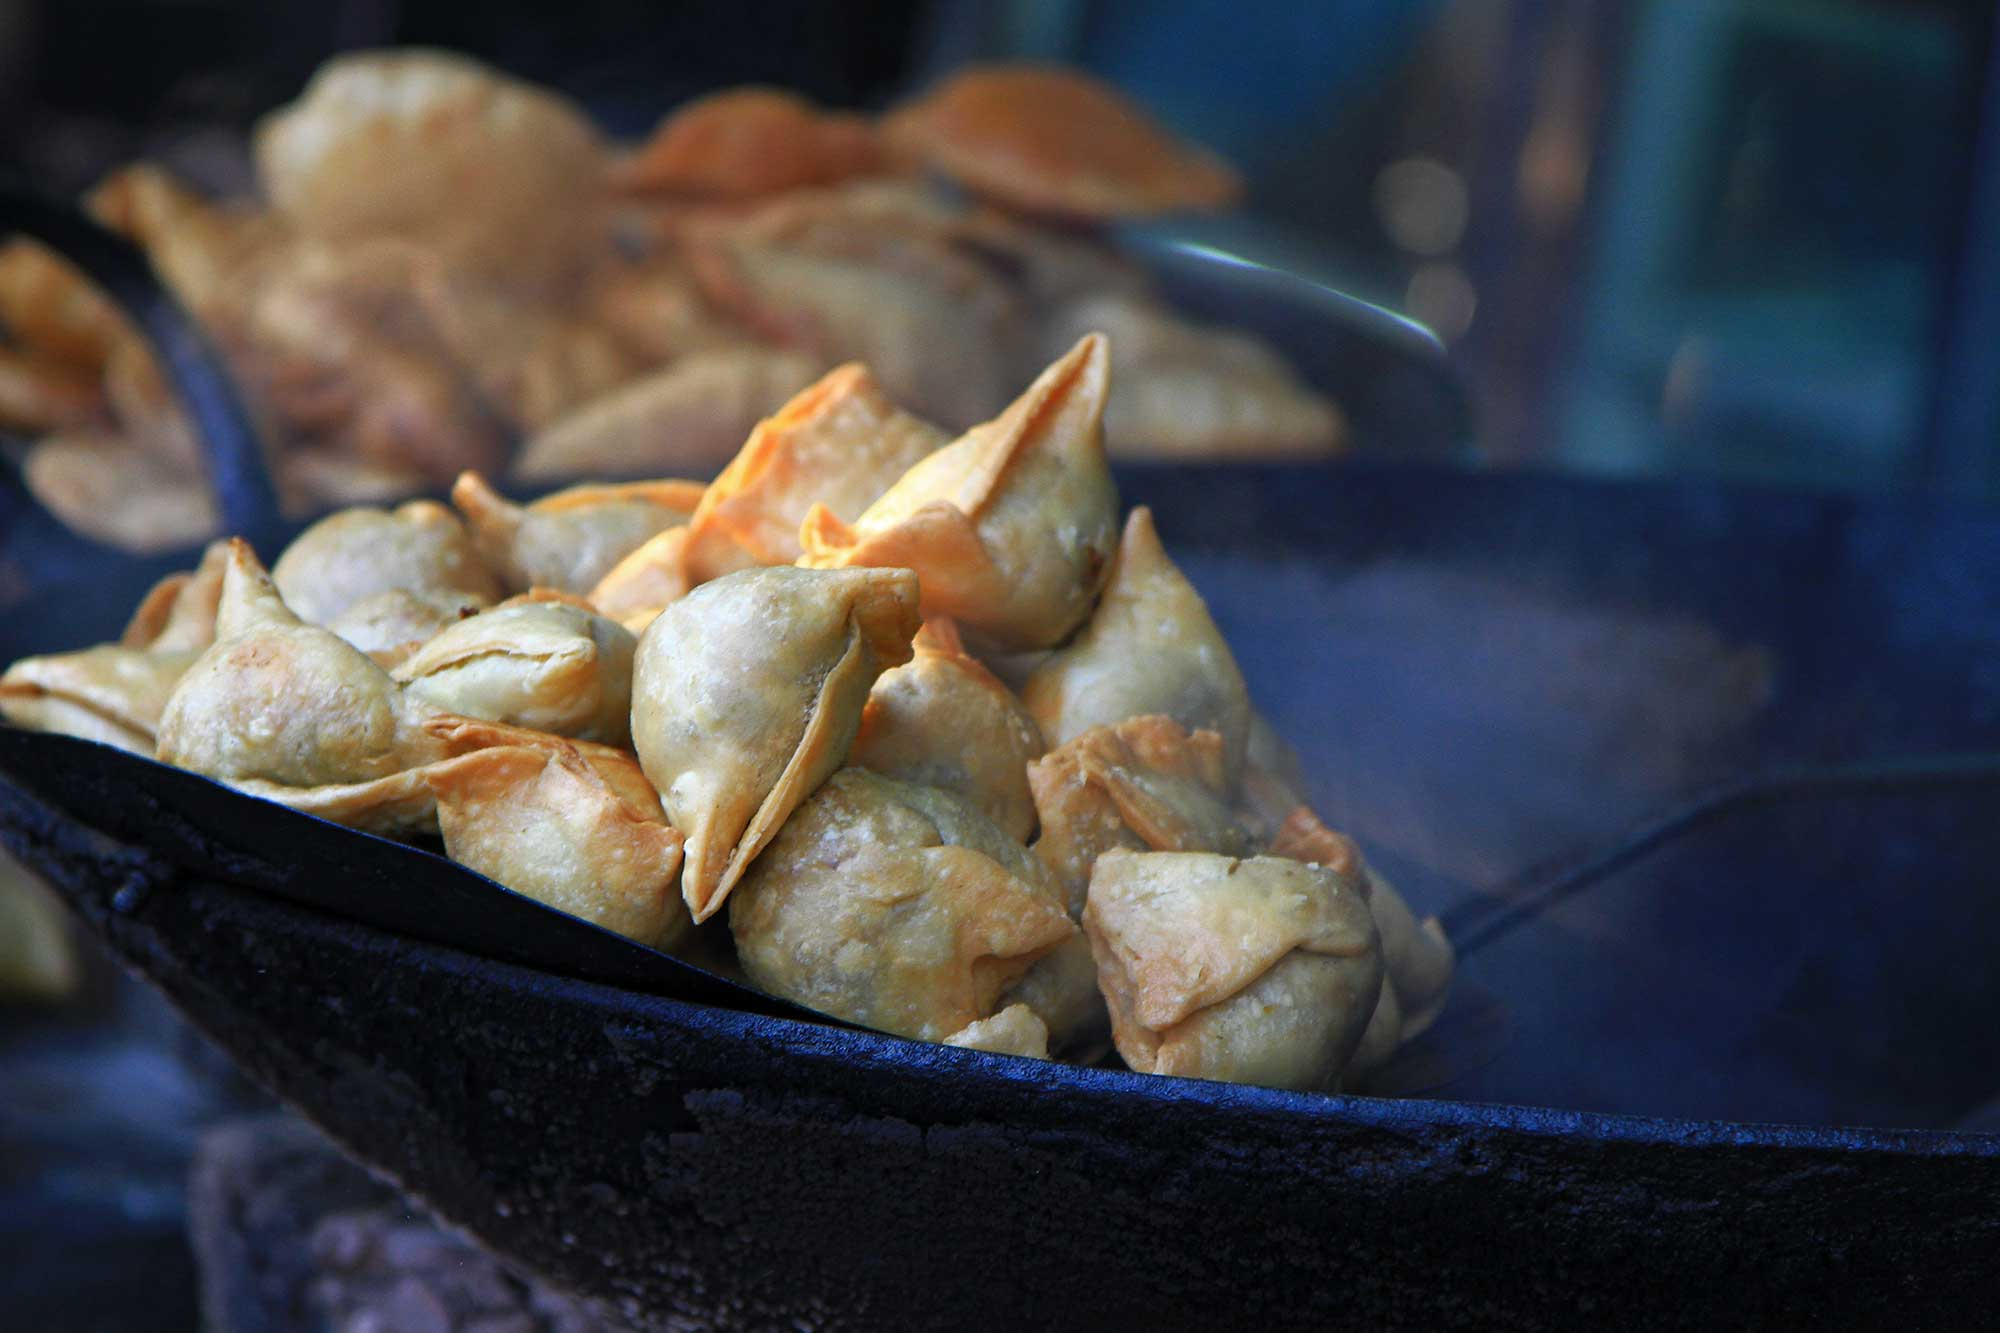 Samosas at a food stall in Varanasi, India. © Ulli Maier & Nisa Maier